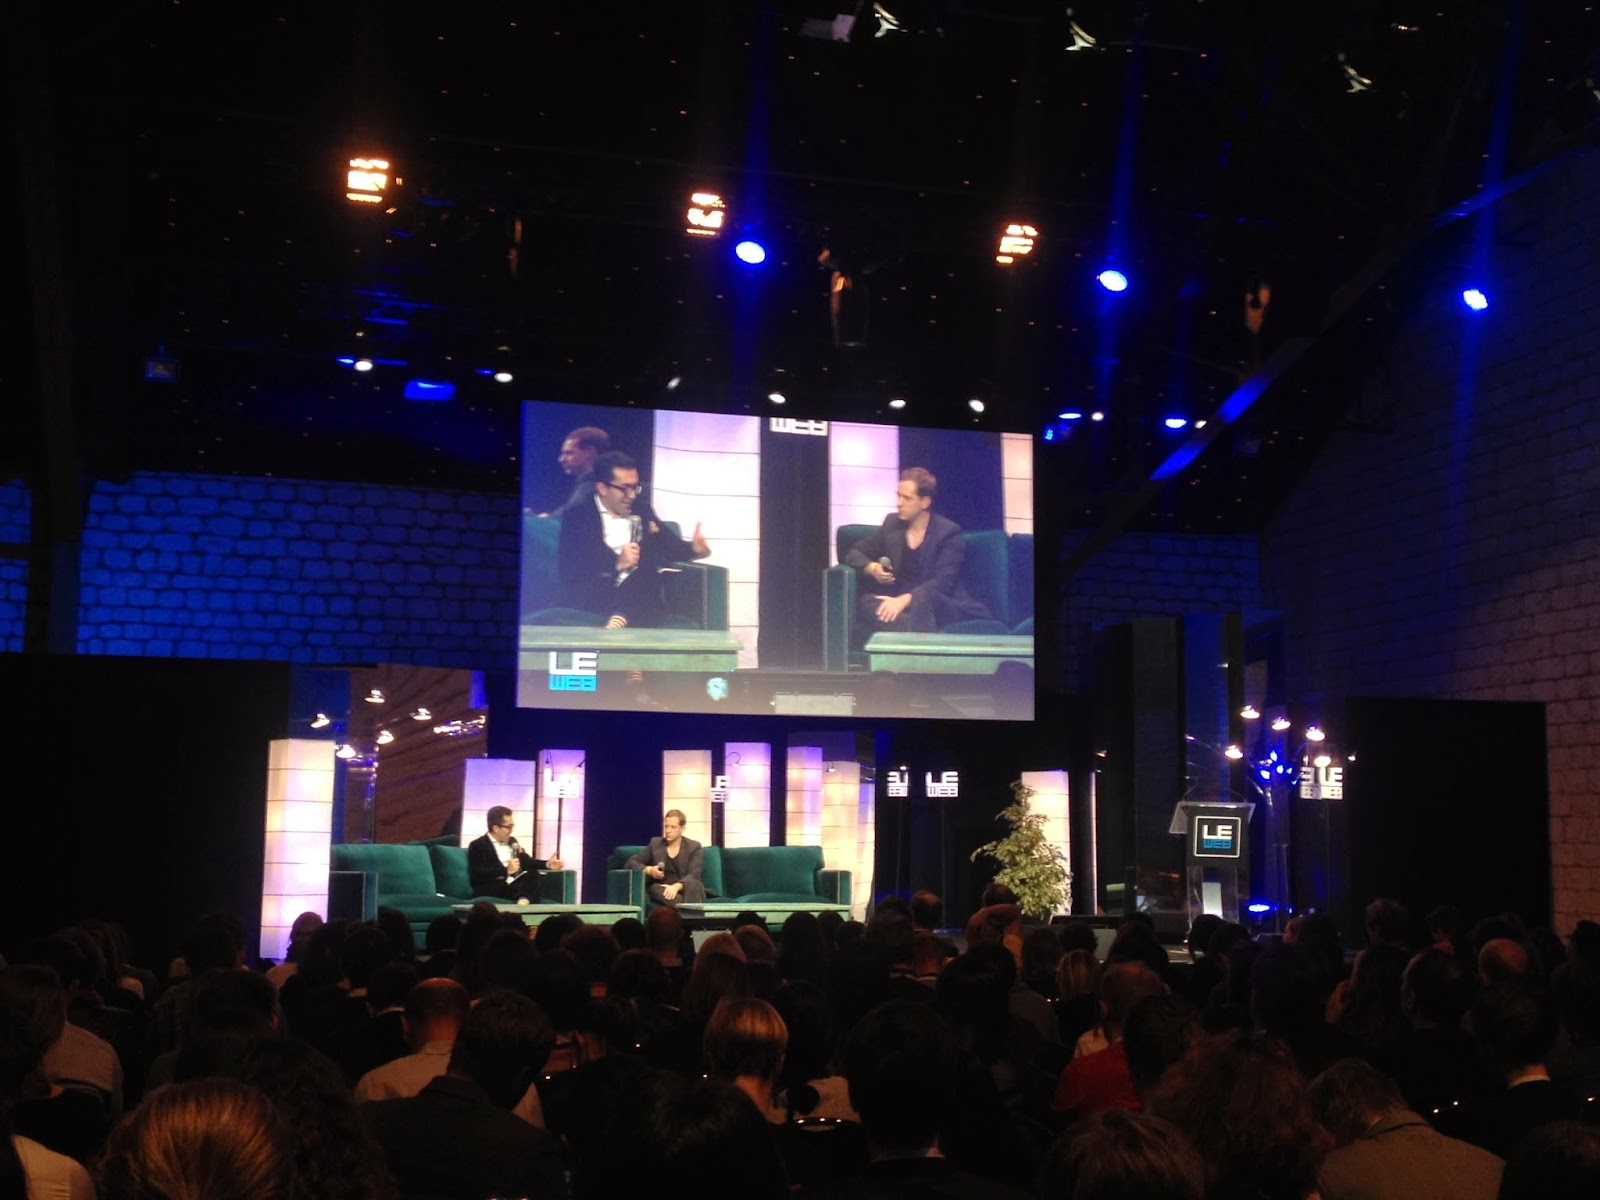 Lars Silberbauer Andersen at LeWeb'14 Paris